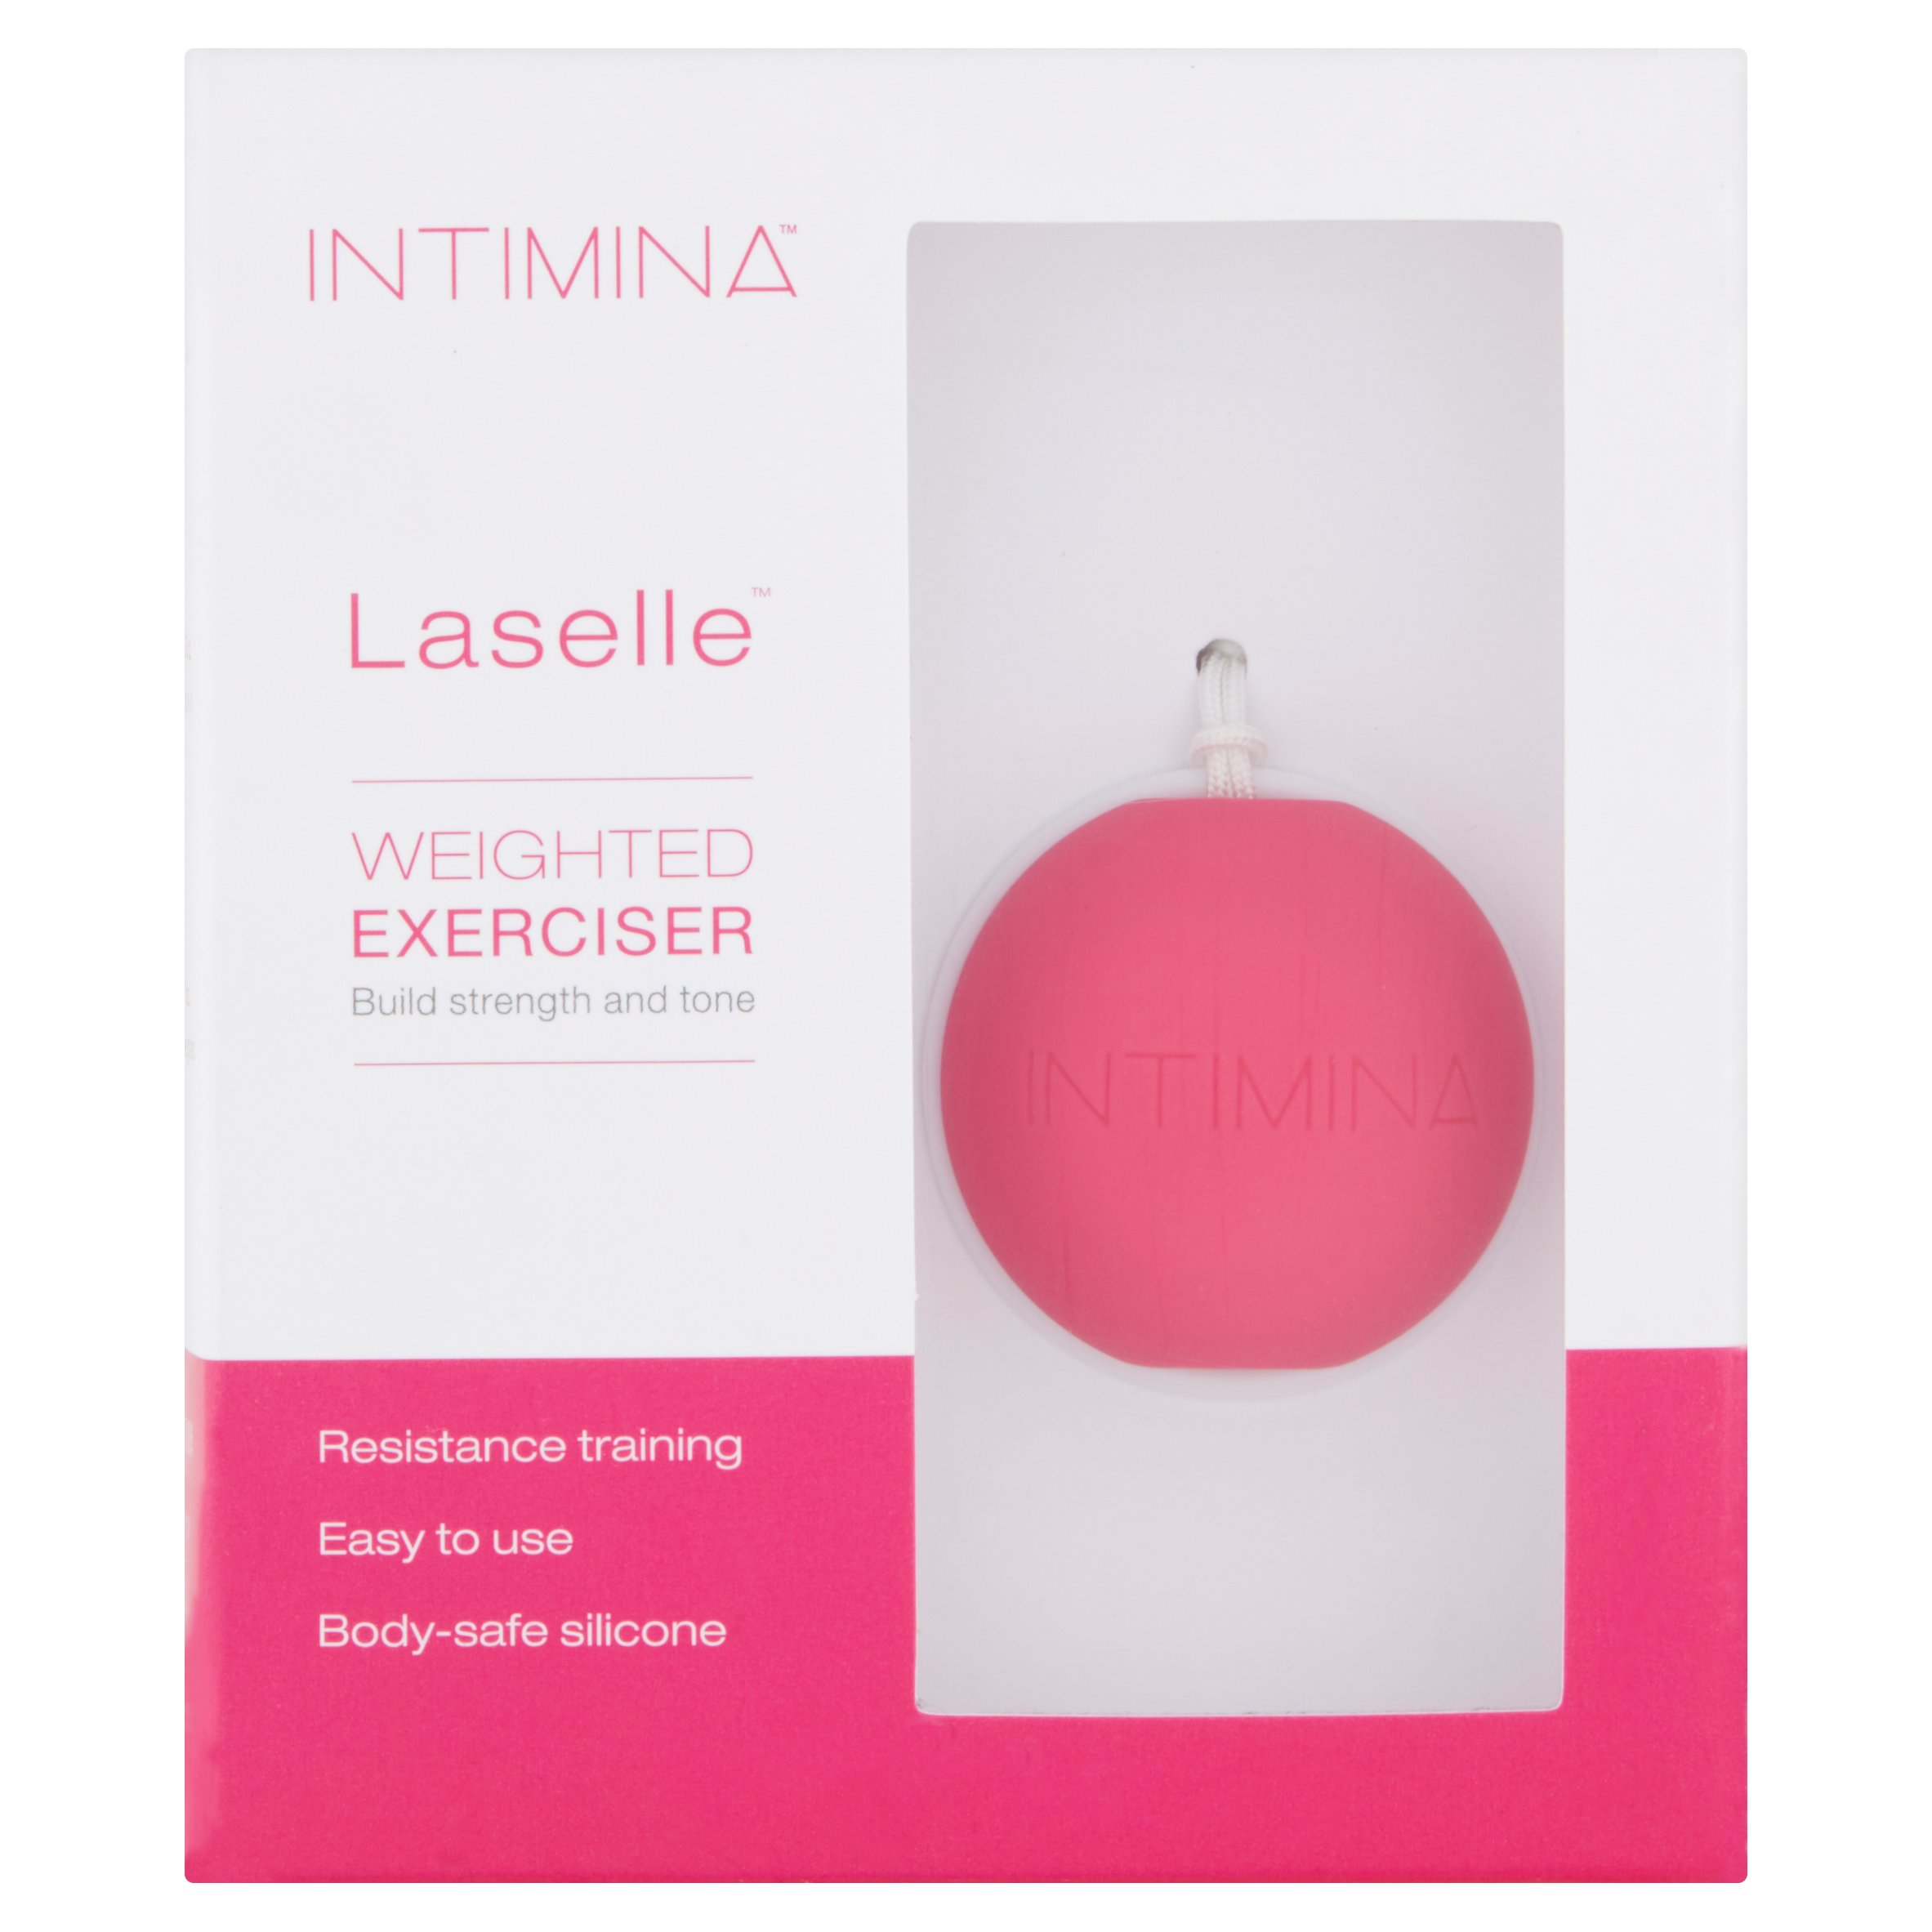 Intimina Laselle Weighted Exerciser